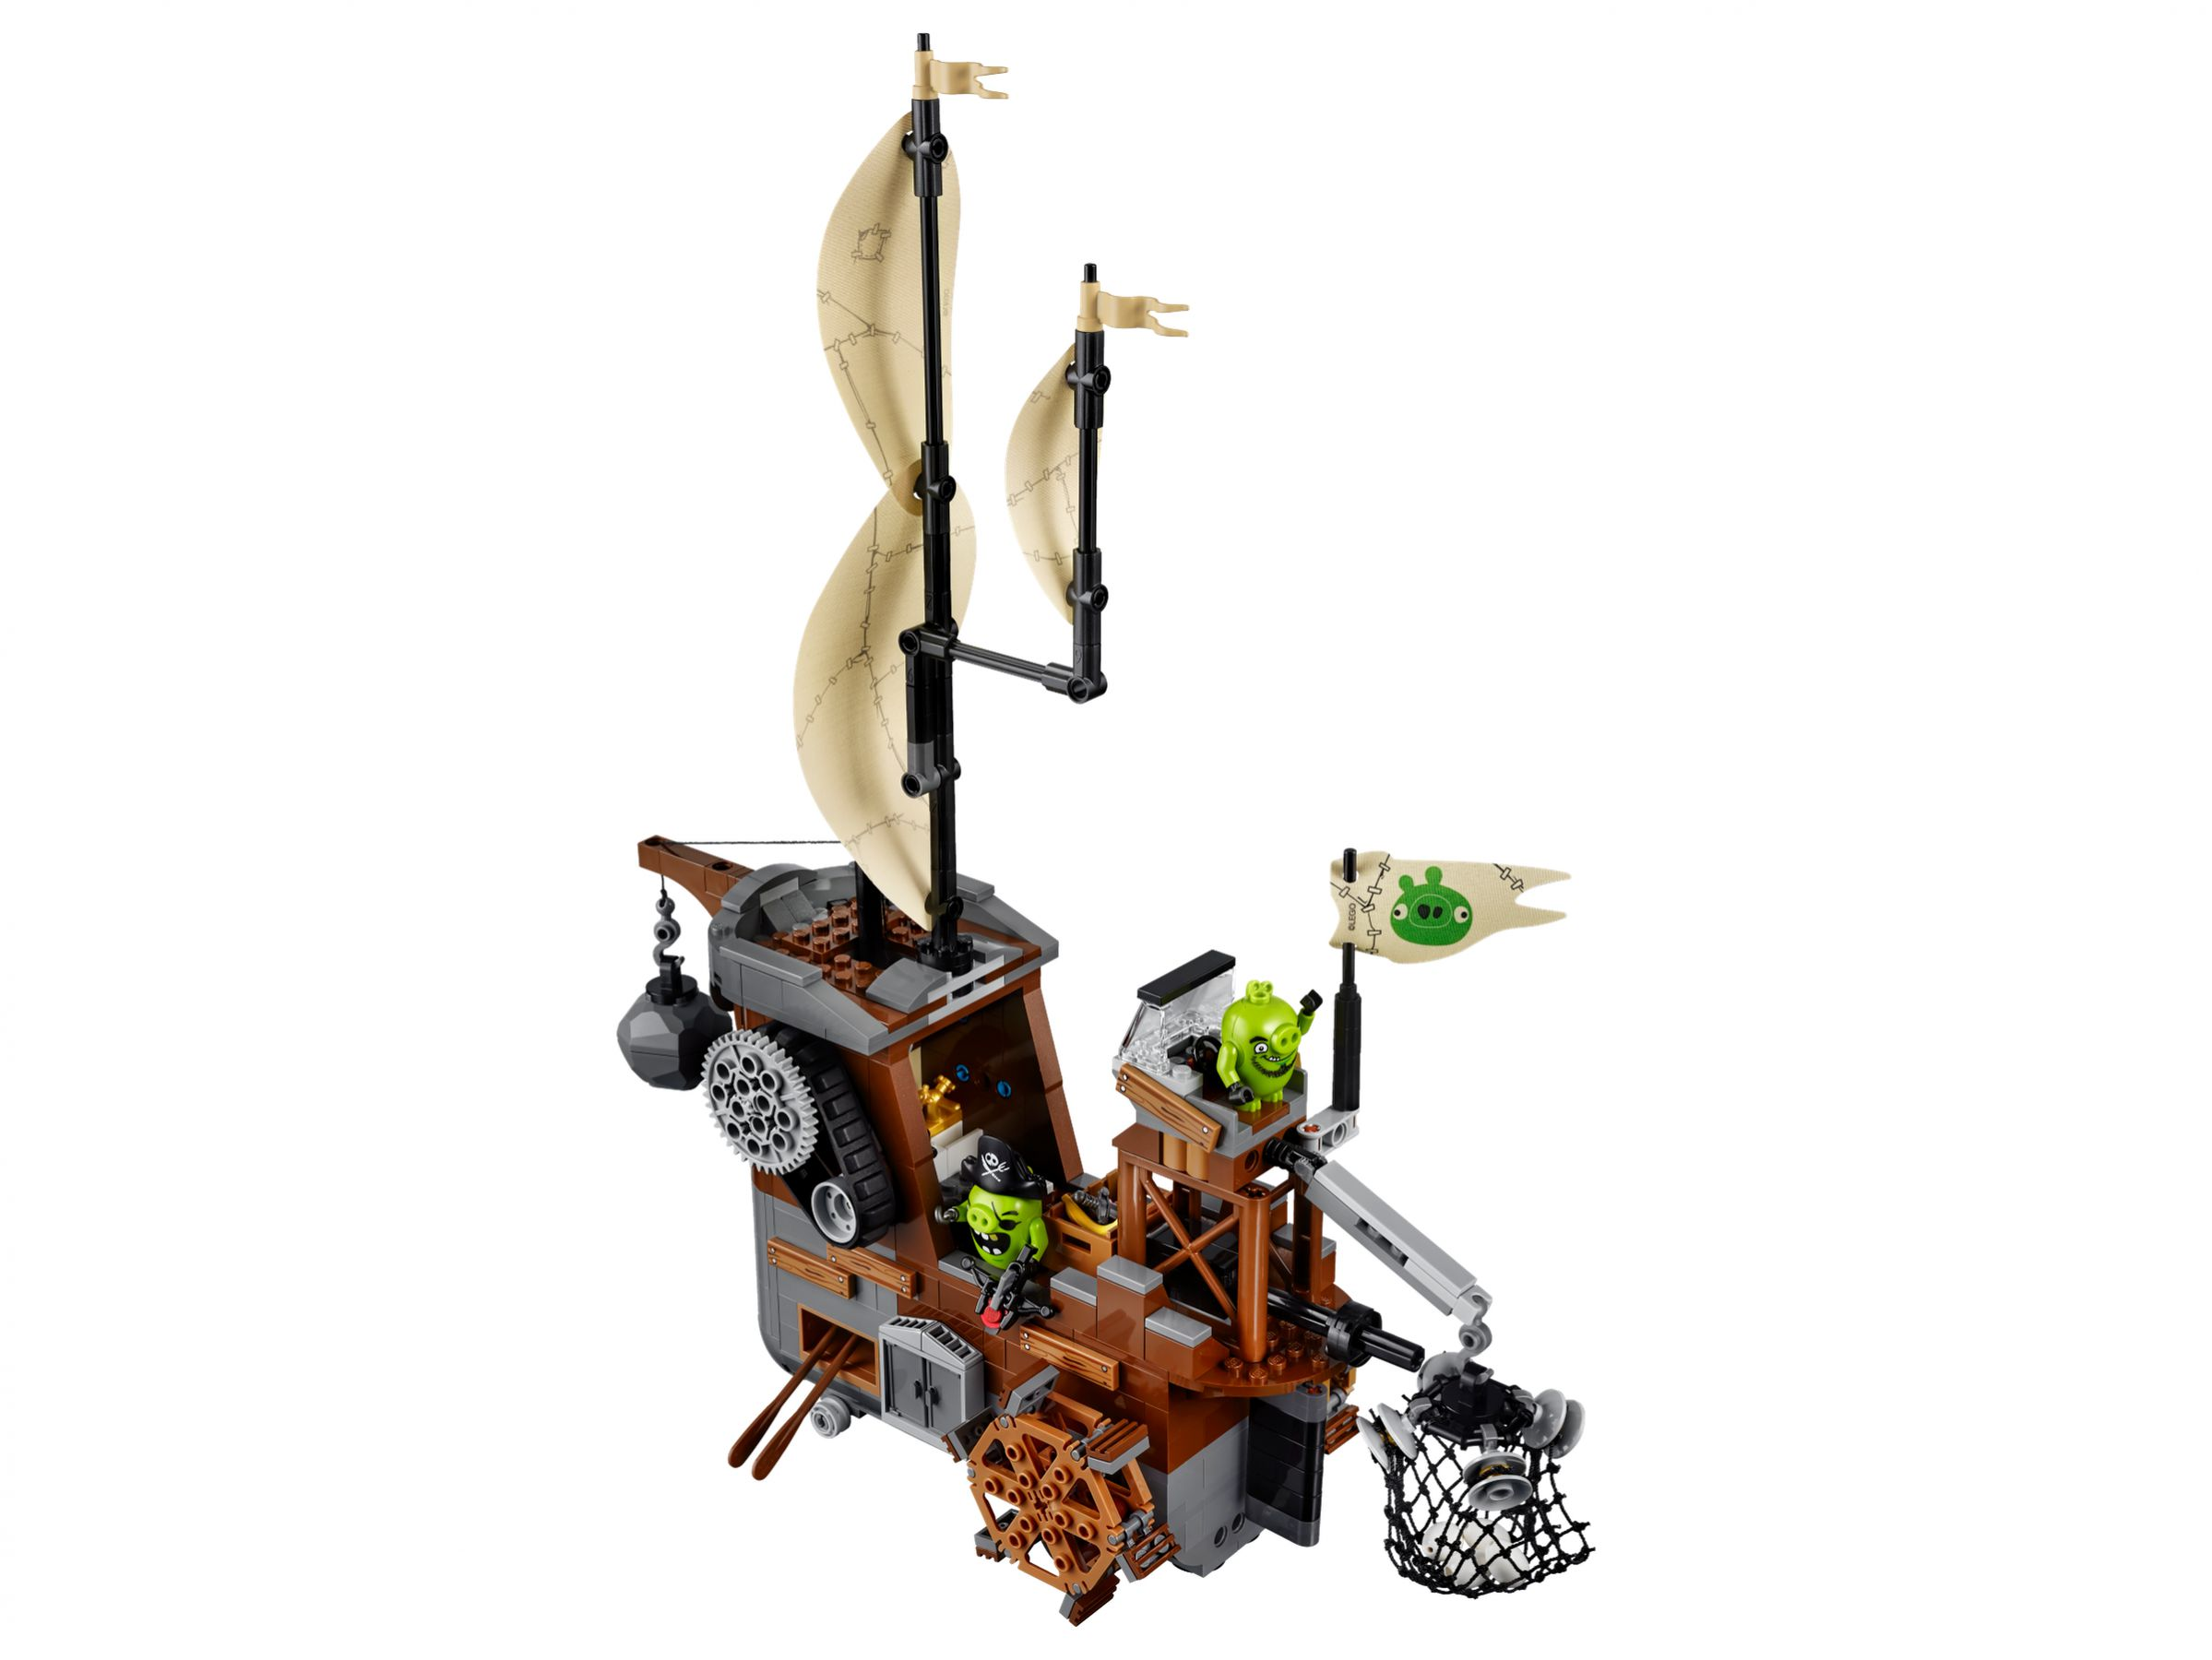 LEGO Angry Birds 75825 Piggy Pirate Ship LEGO_75825_alt2.jpg